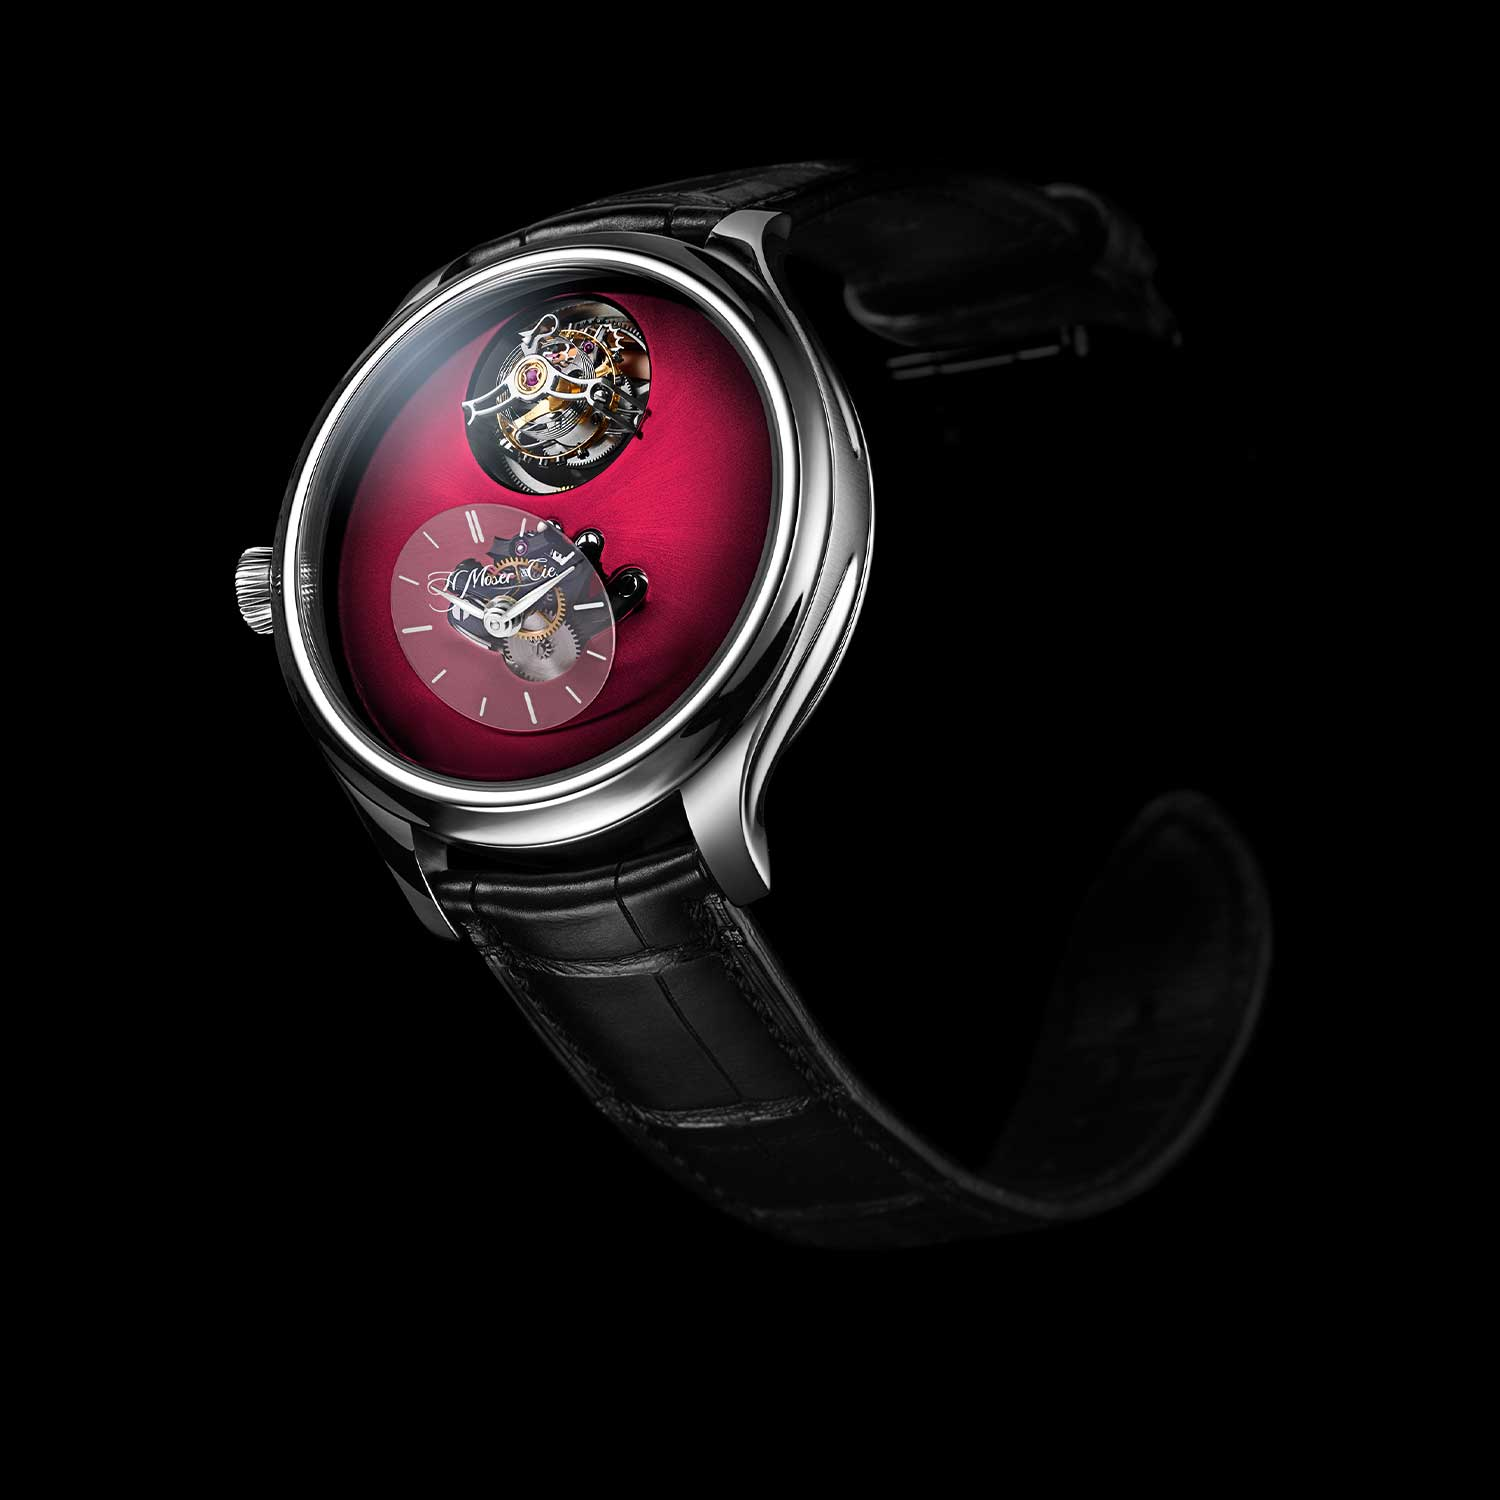 MB&F × H. Moser Endeavour Cylindrical Tourbillon with the Burgundy dial